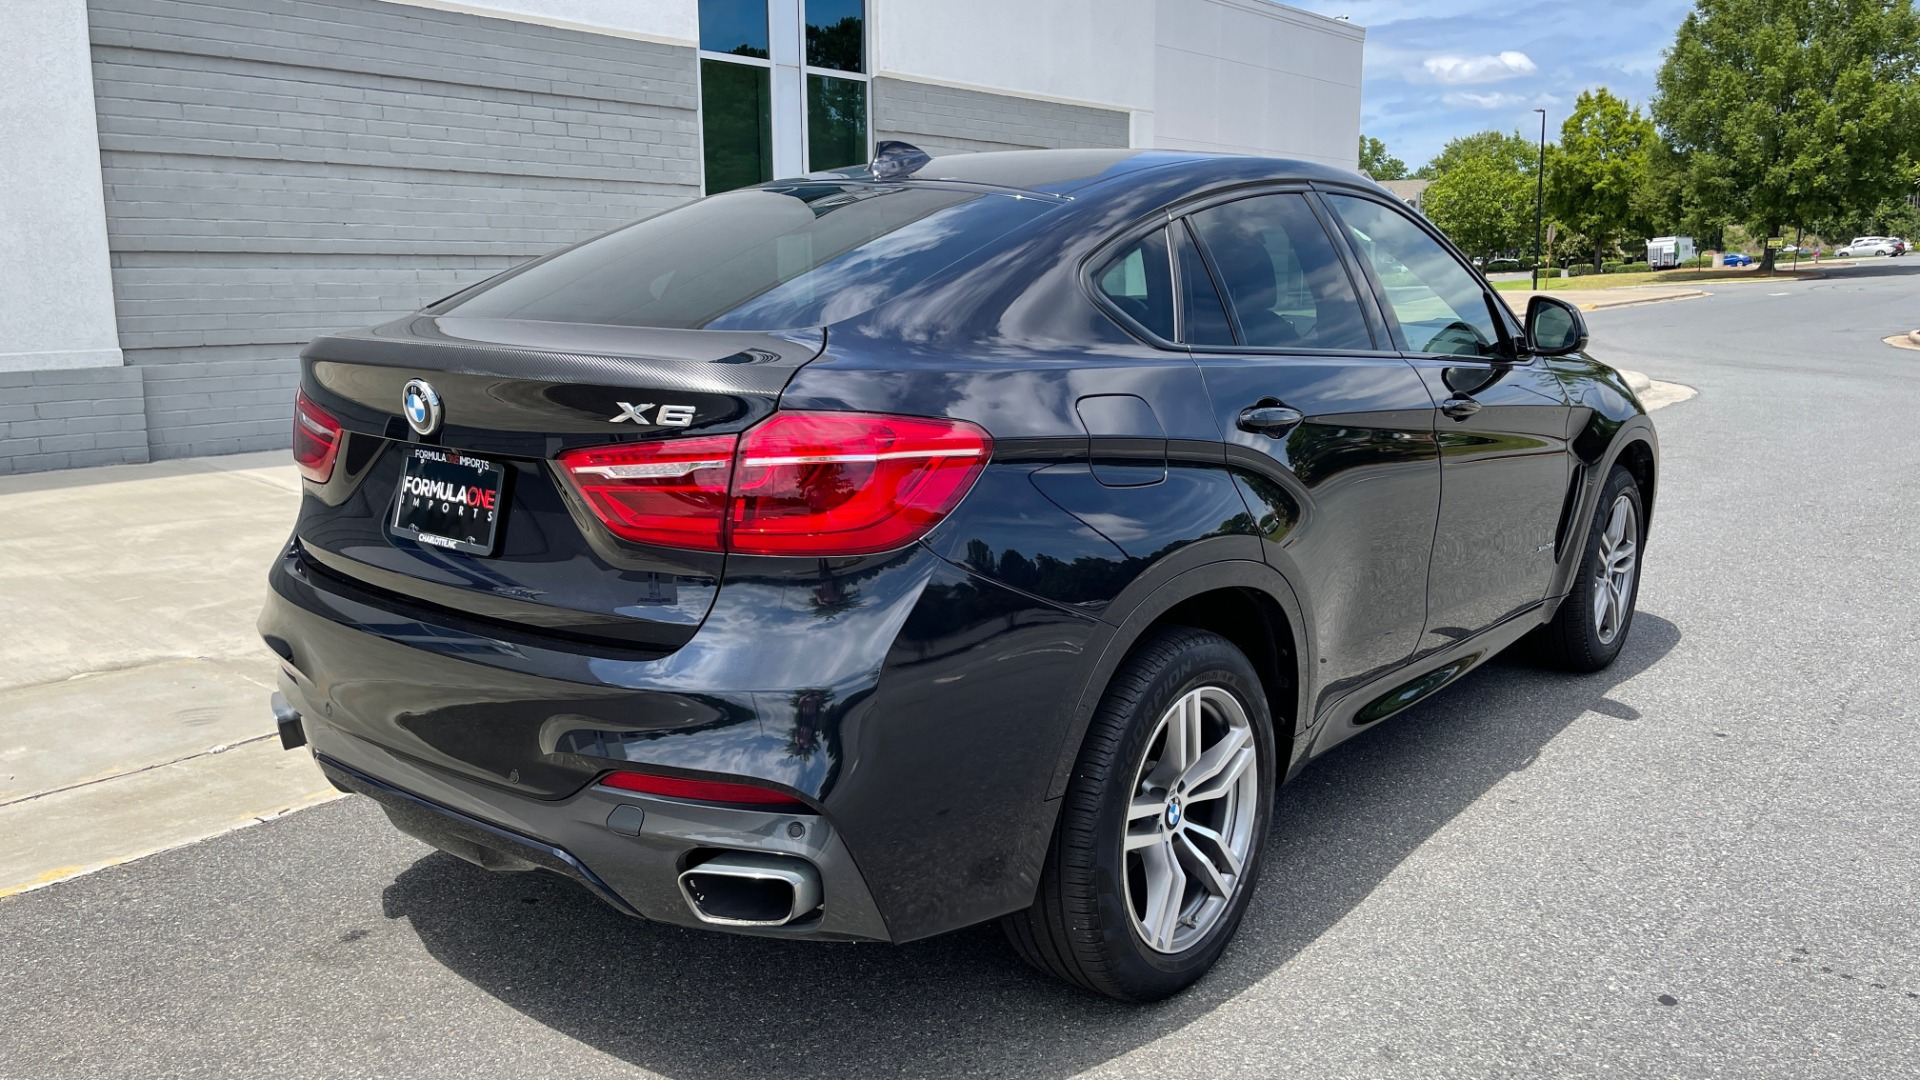 Used 2018 BMW X6 XDRIVE35I M-SPORT / DRVR ASST / PRK ASST / H/K SND / APPLE / WIRELESS CHARG for sale $51,995 at Formula Imports in Charlotte NC 28227 2